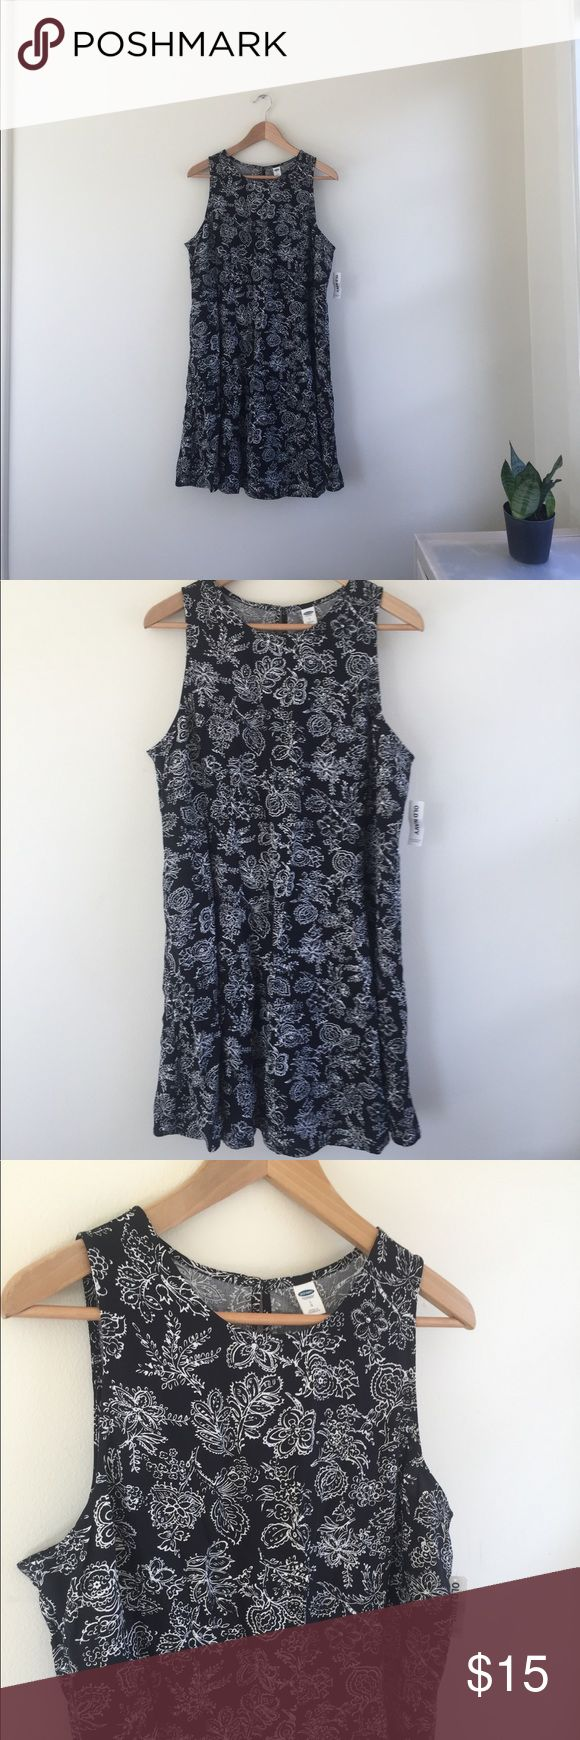 Old Navy Dress Summer Paisley Floral L NWT New with tags! Very cute and would look awesome with a belt! Old Navy Dresses